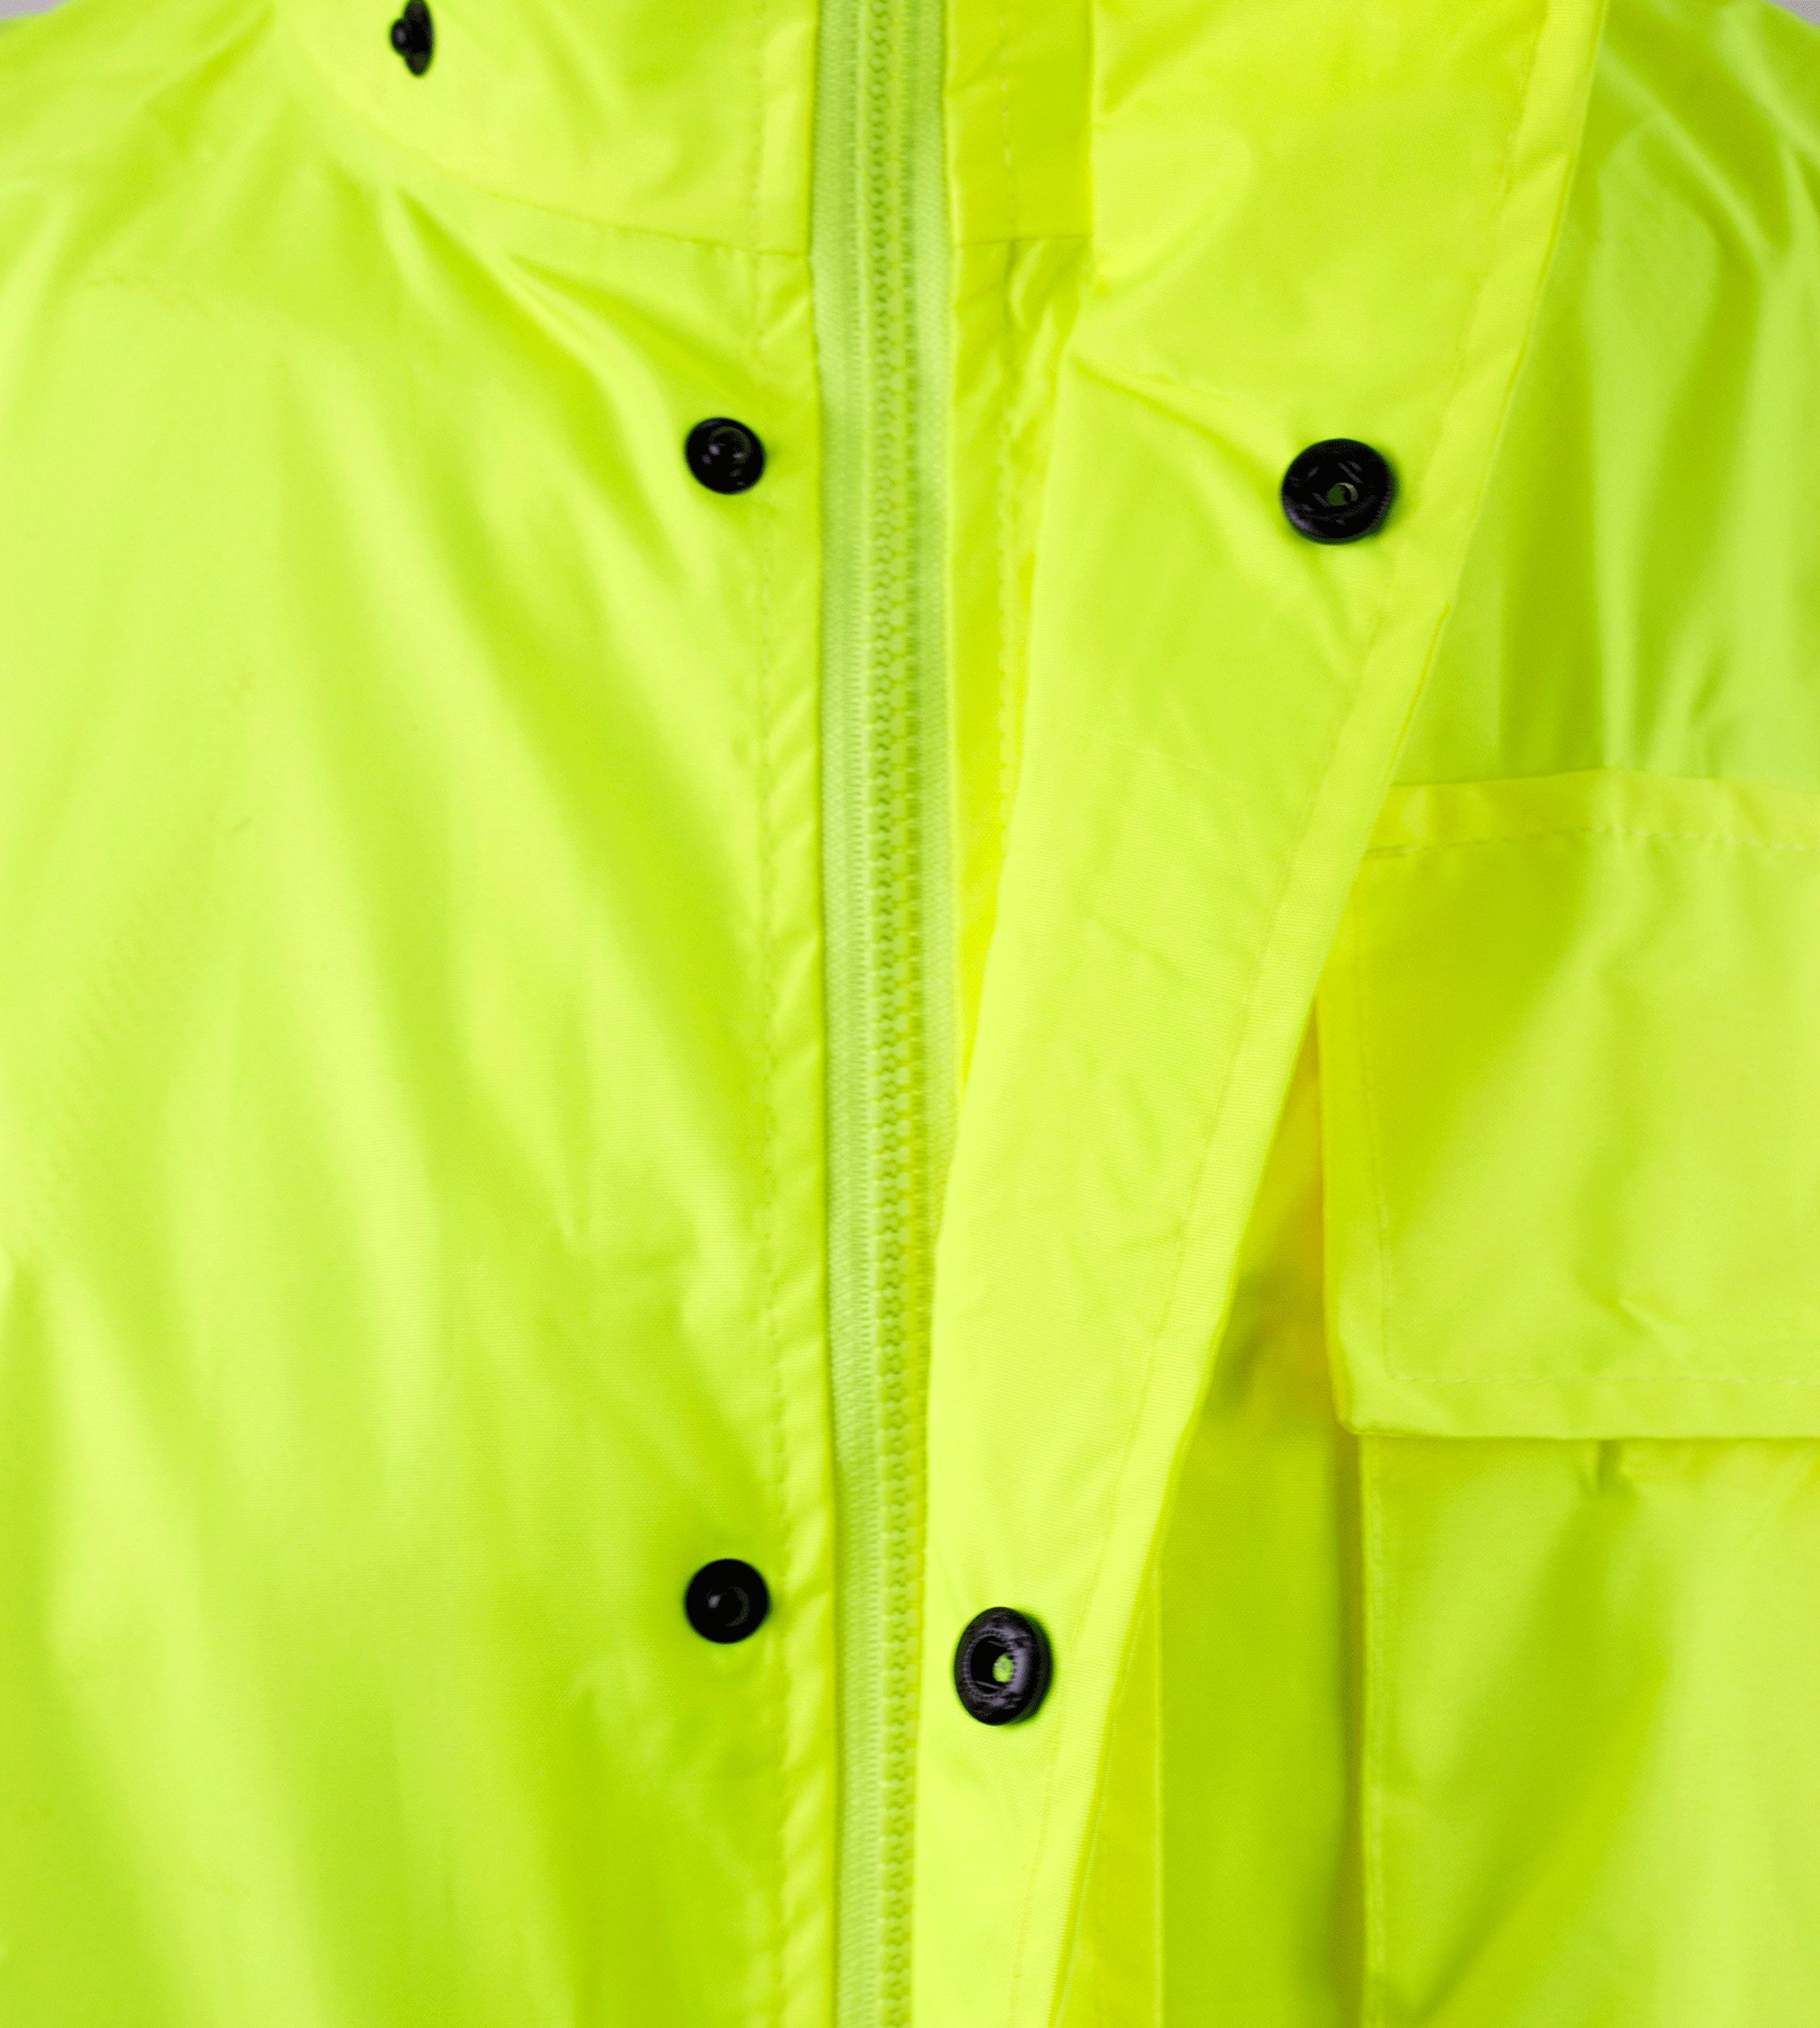 RK Safety Class 3 Rain suit, Jacket, Pants High Visibility Reflective Black Bottom RW-CLA3-LM11 (Medium, Lime) by New York Hi-Viz Workwear (Image #2)